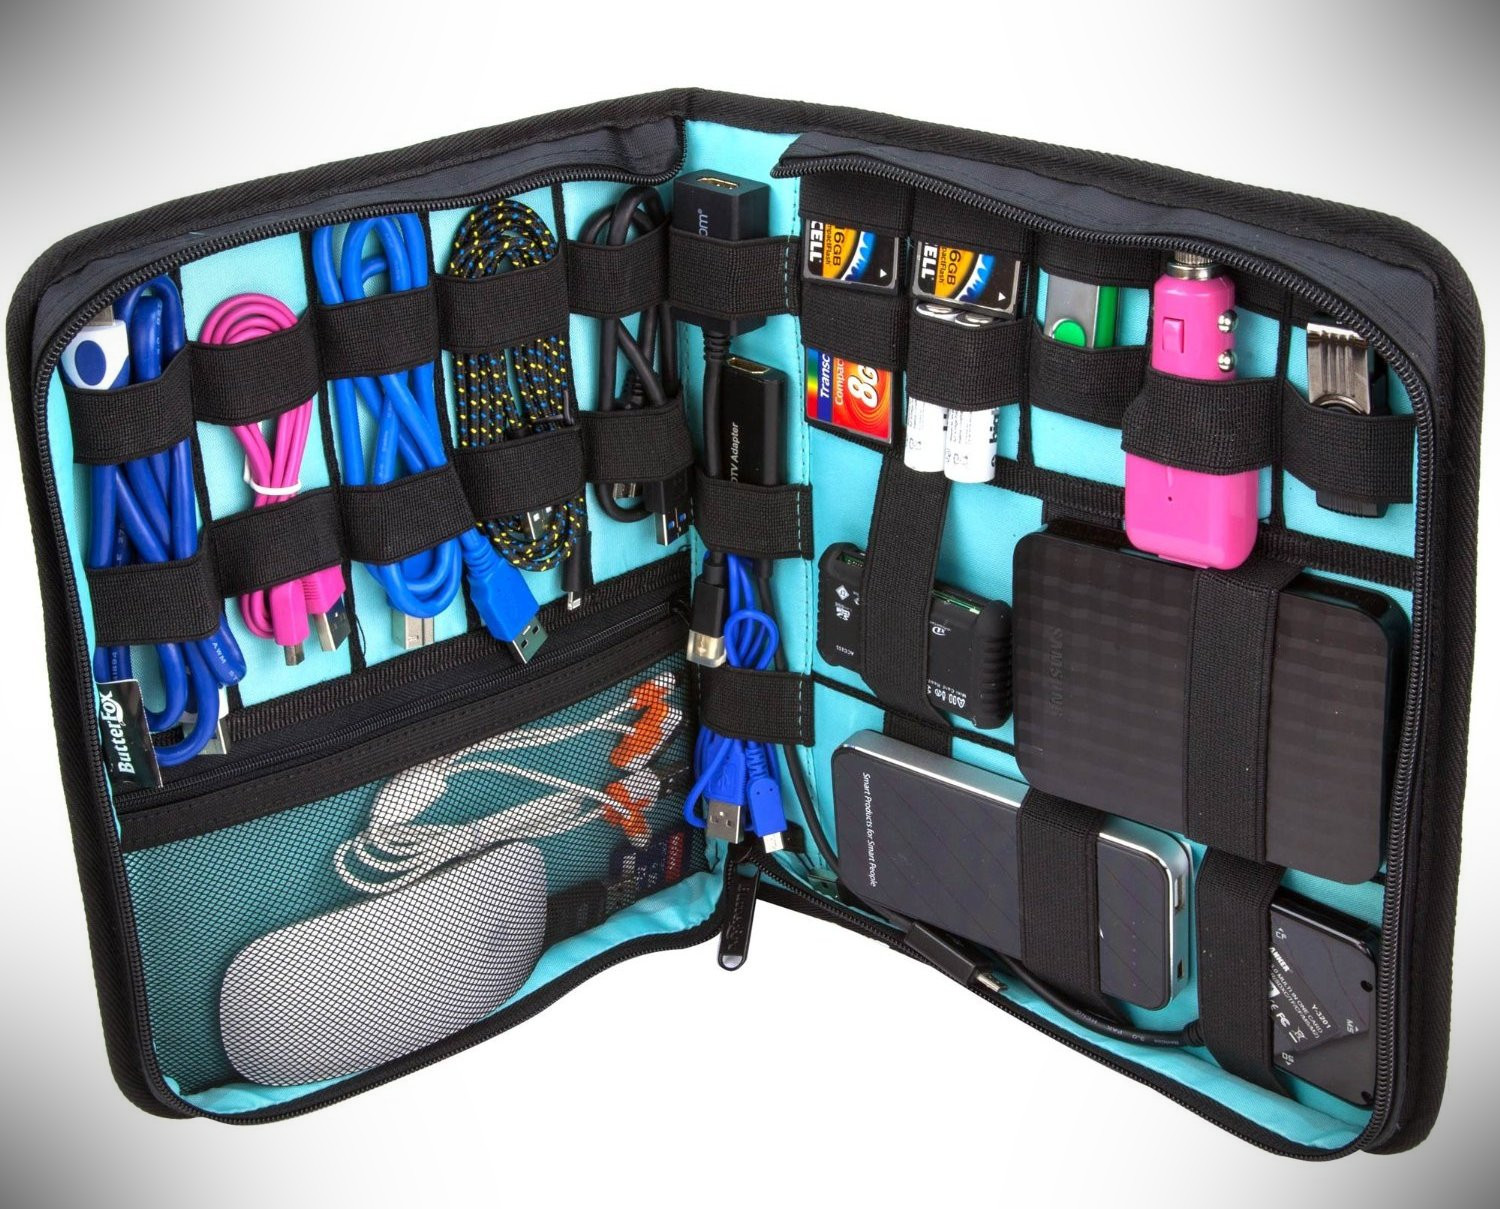 ButterFox Electronics Accessories Travel Organizer – gift for traveler